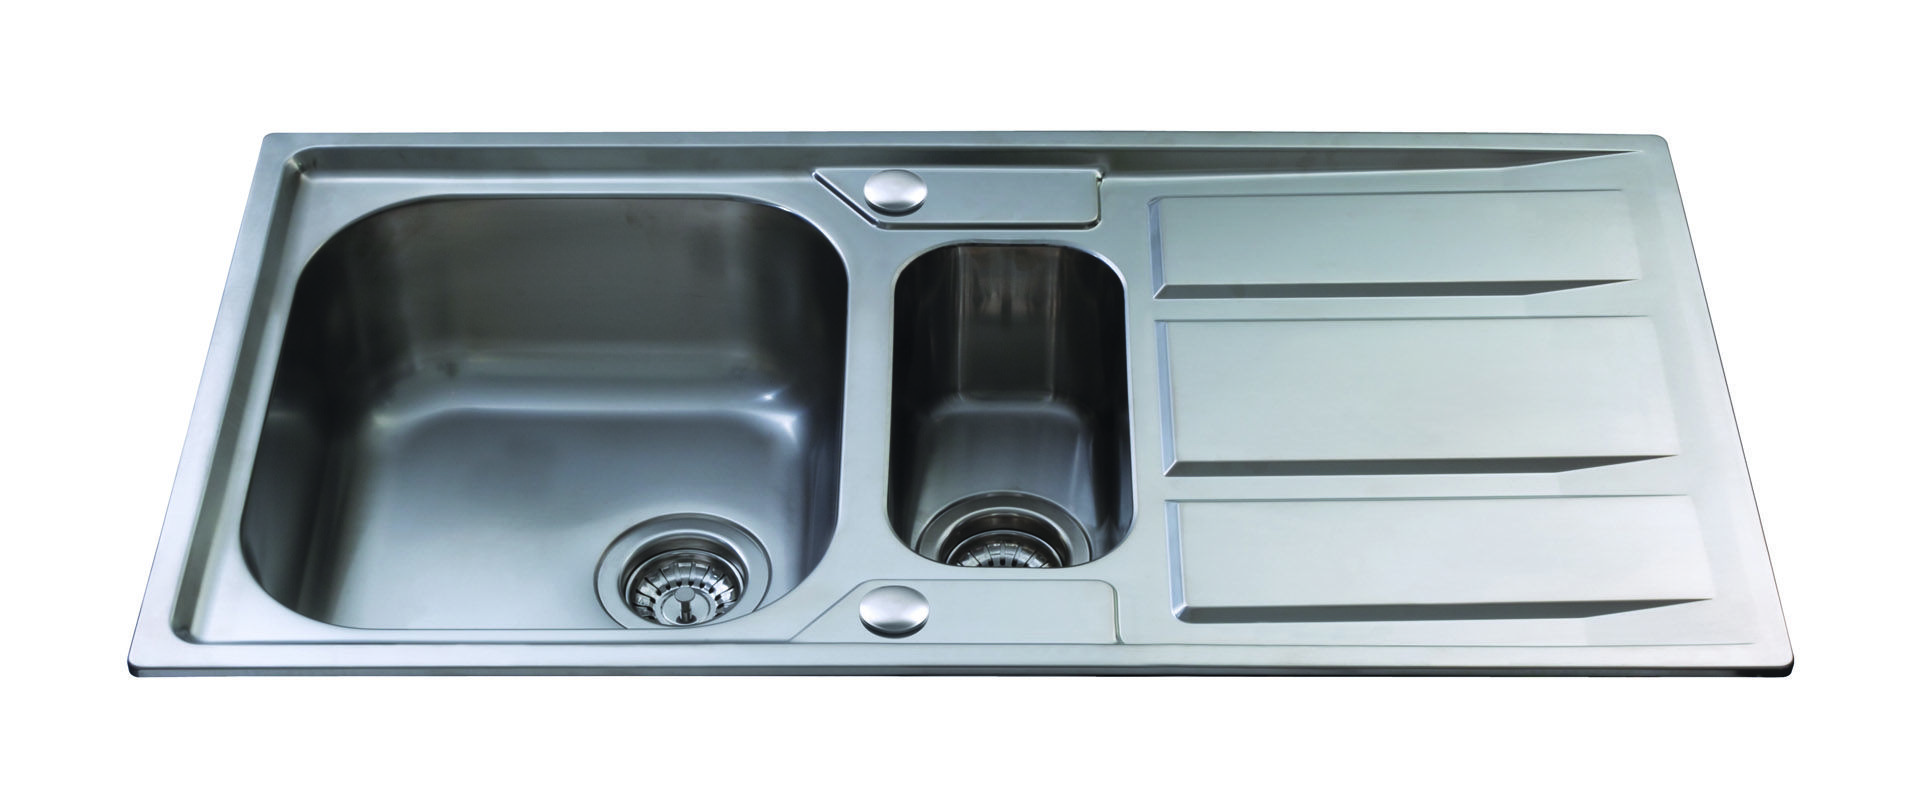 CDA KA82SS Double Bowl Sink - Stainless Steel Finished in polished ...